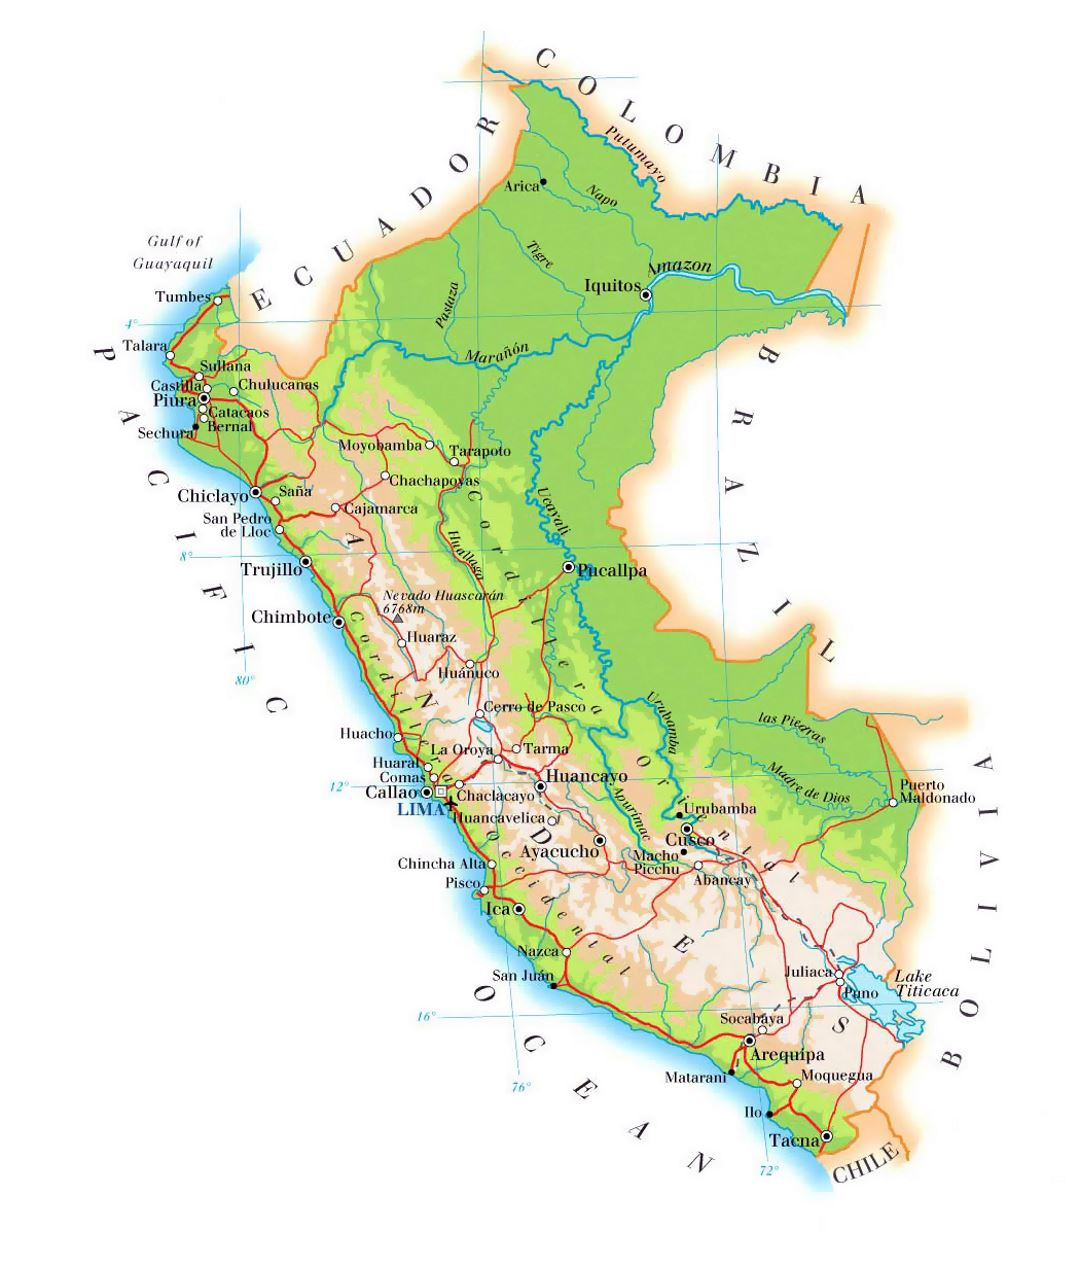 Airports In Peru Map.Detailed Elevation Map Of Peru With Roads Cities And Airports